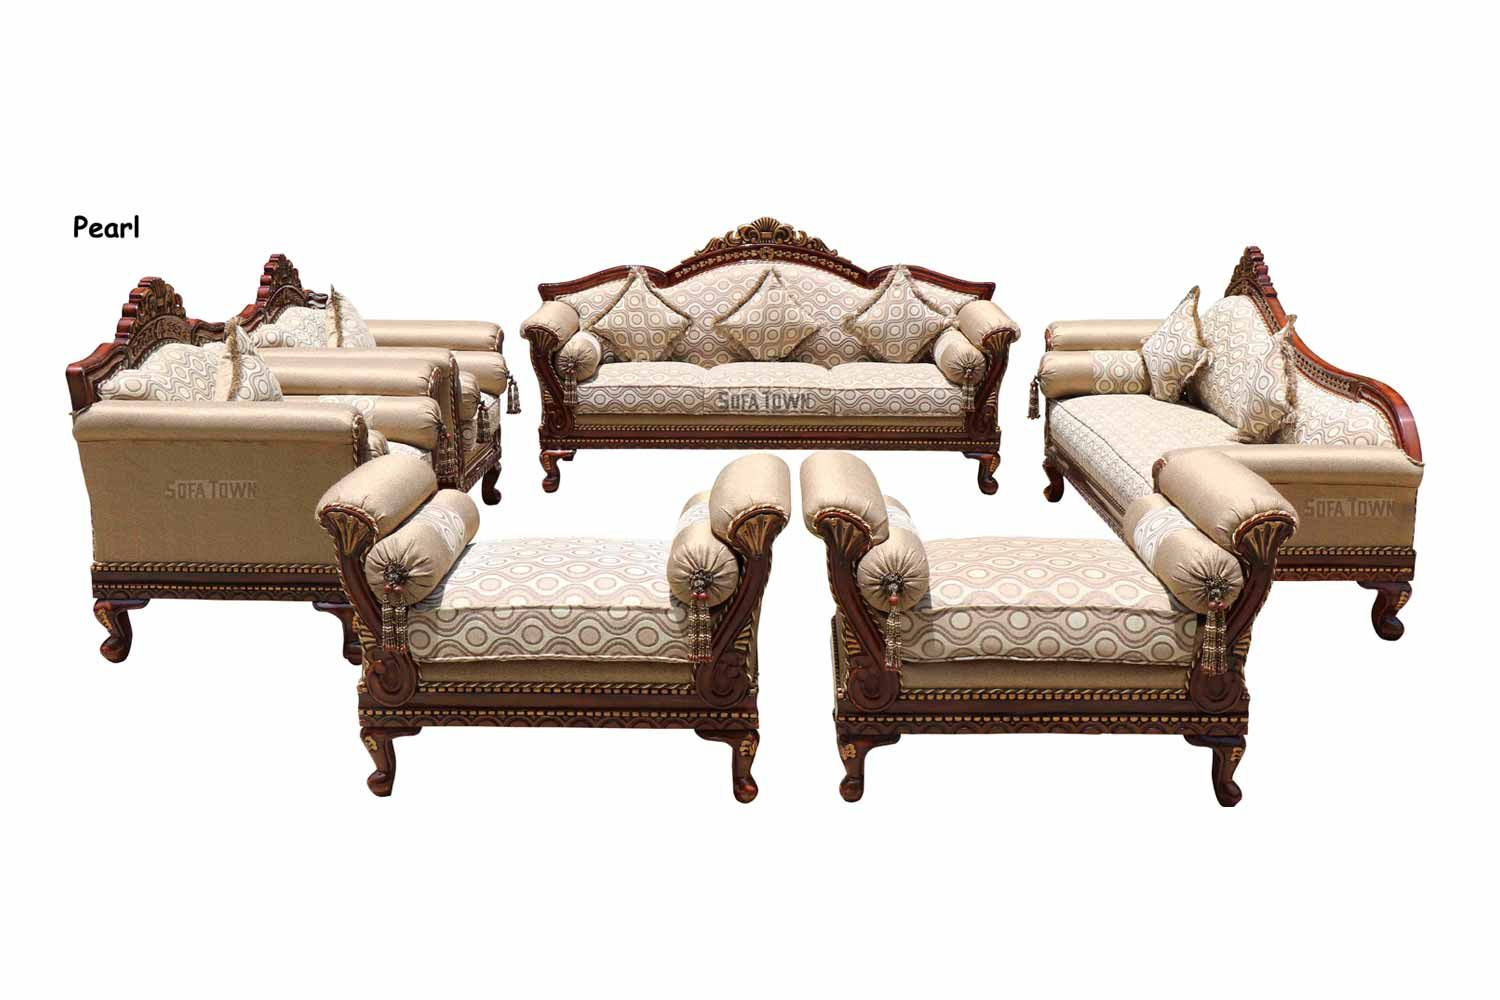 Buy Marriott 3 Seater Wooden Sofa Honey Finish Online In India Wooden Street Furniture Design Living Room Wooden Sofa Designs Living Room Sofa Design